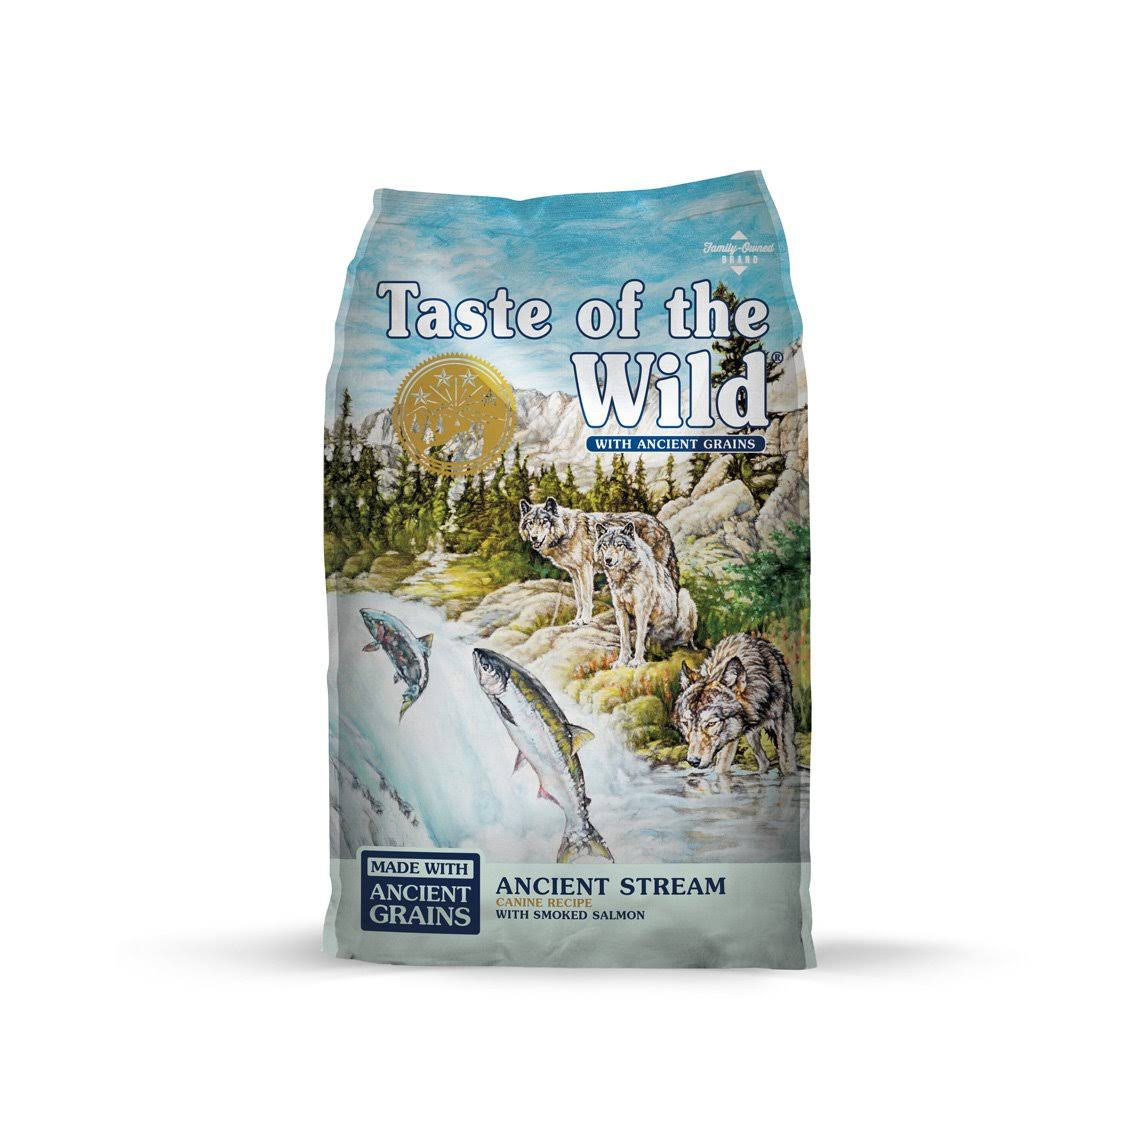 Taste of The Wild Ancient Stream with Ancient Grains Dry Dog Food - 28 lbs.